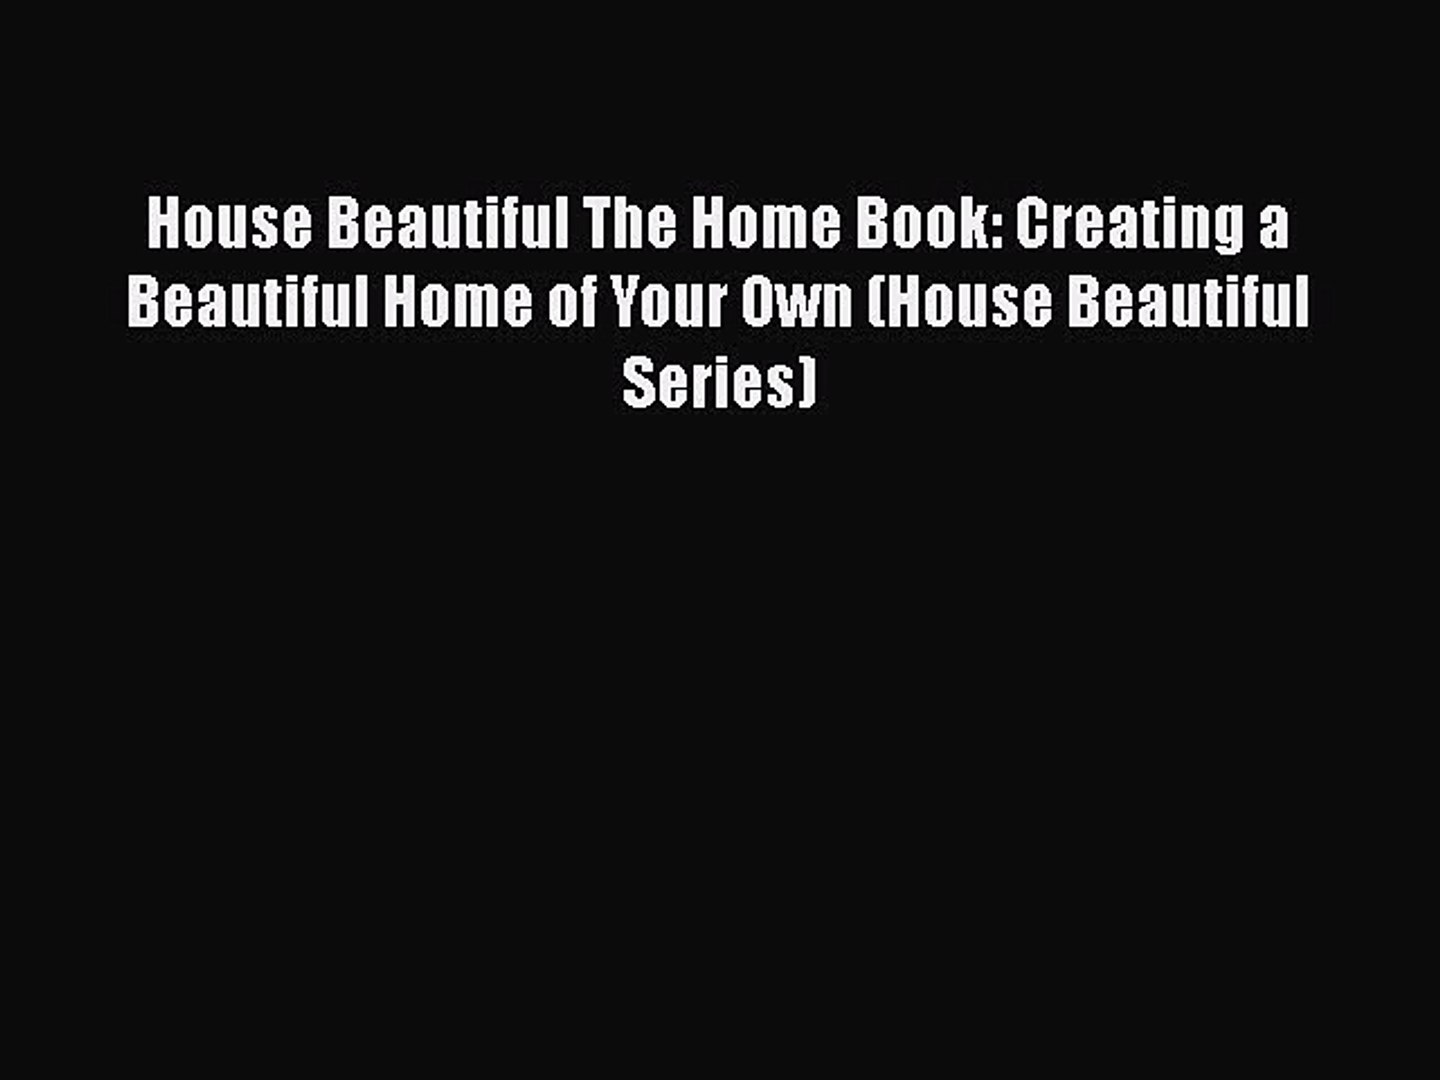 House Beautiful The Home Book: Creating a Beautiful Home of Your Own (House Beautiful Series)